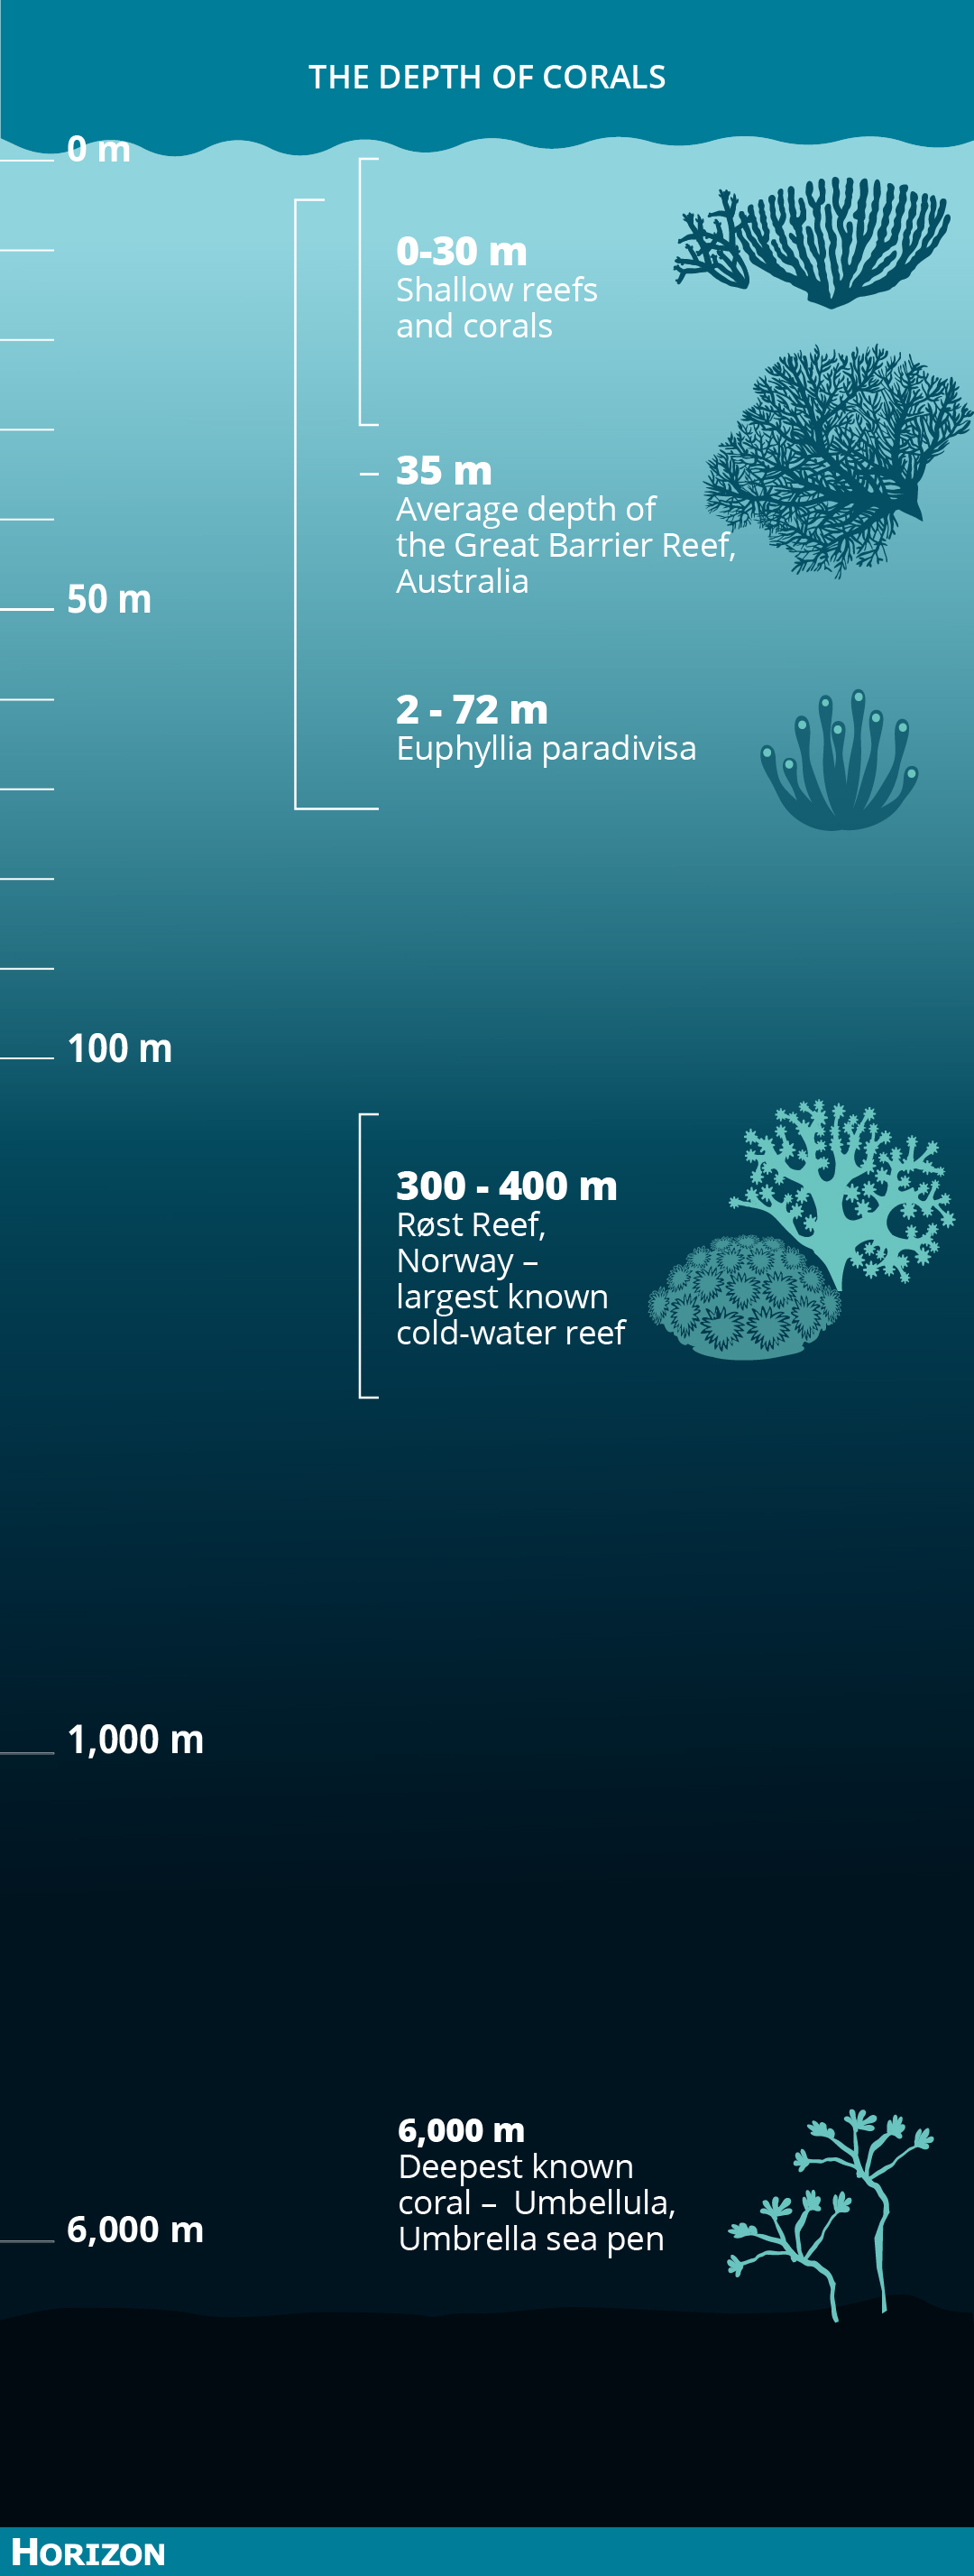 The depth beyond 100 metres is not to scale. Image credit - Horizon